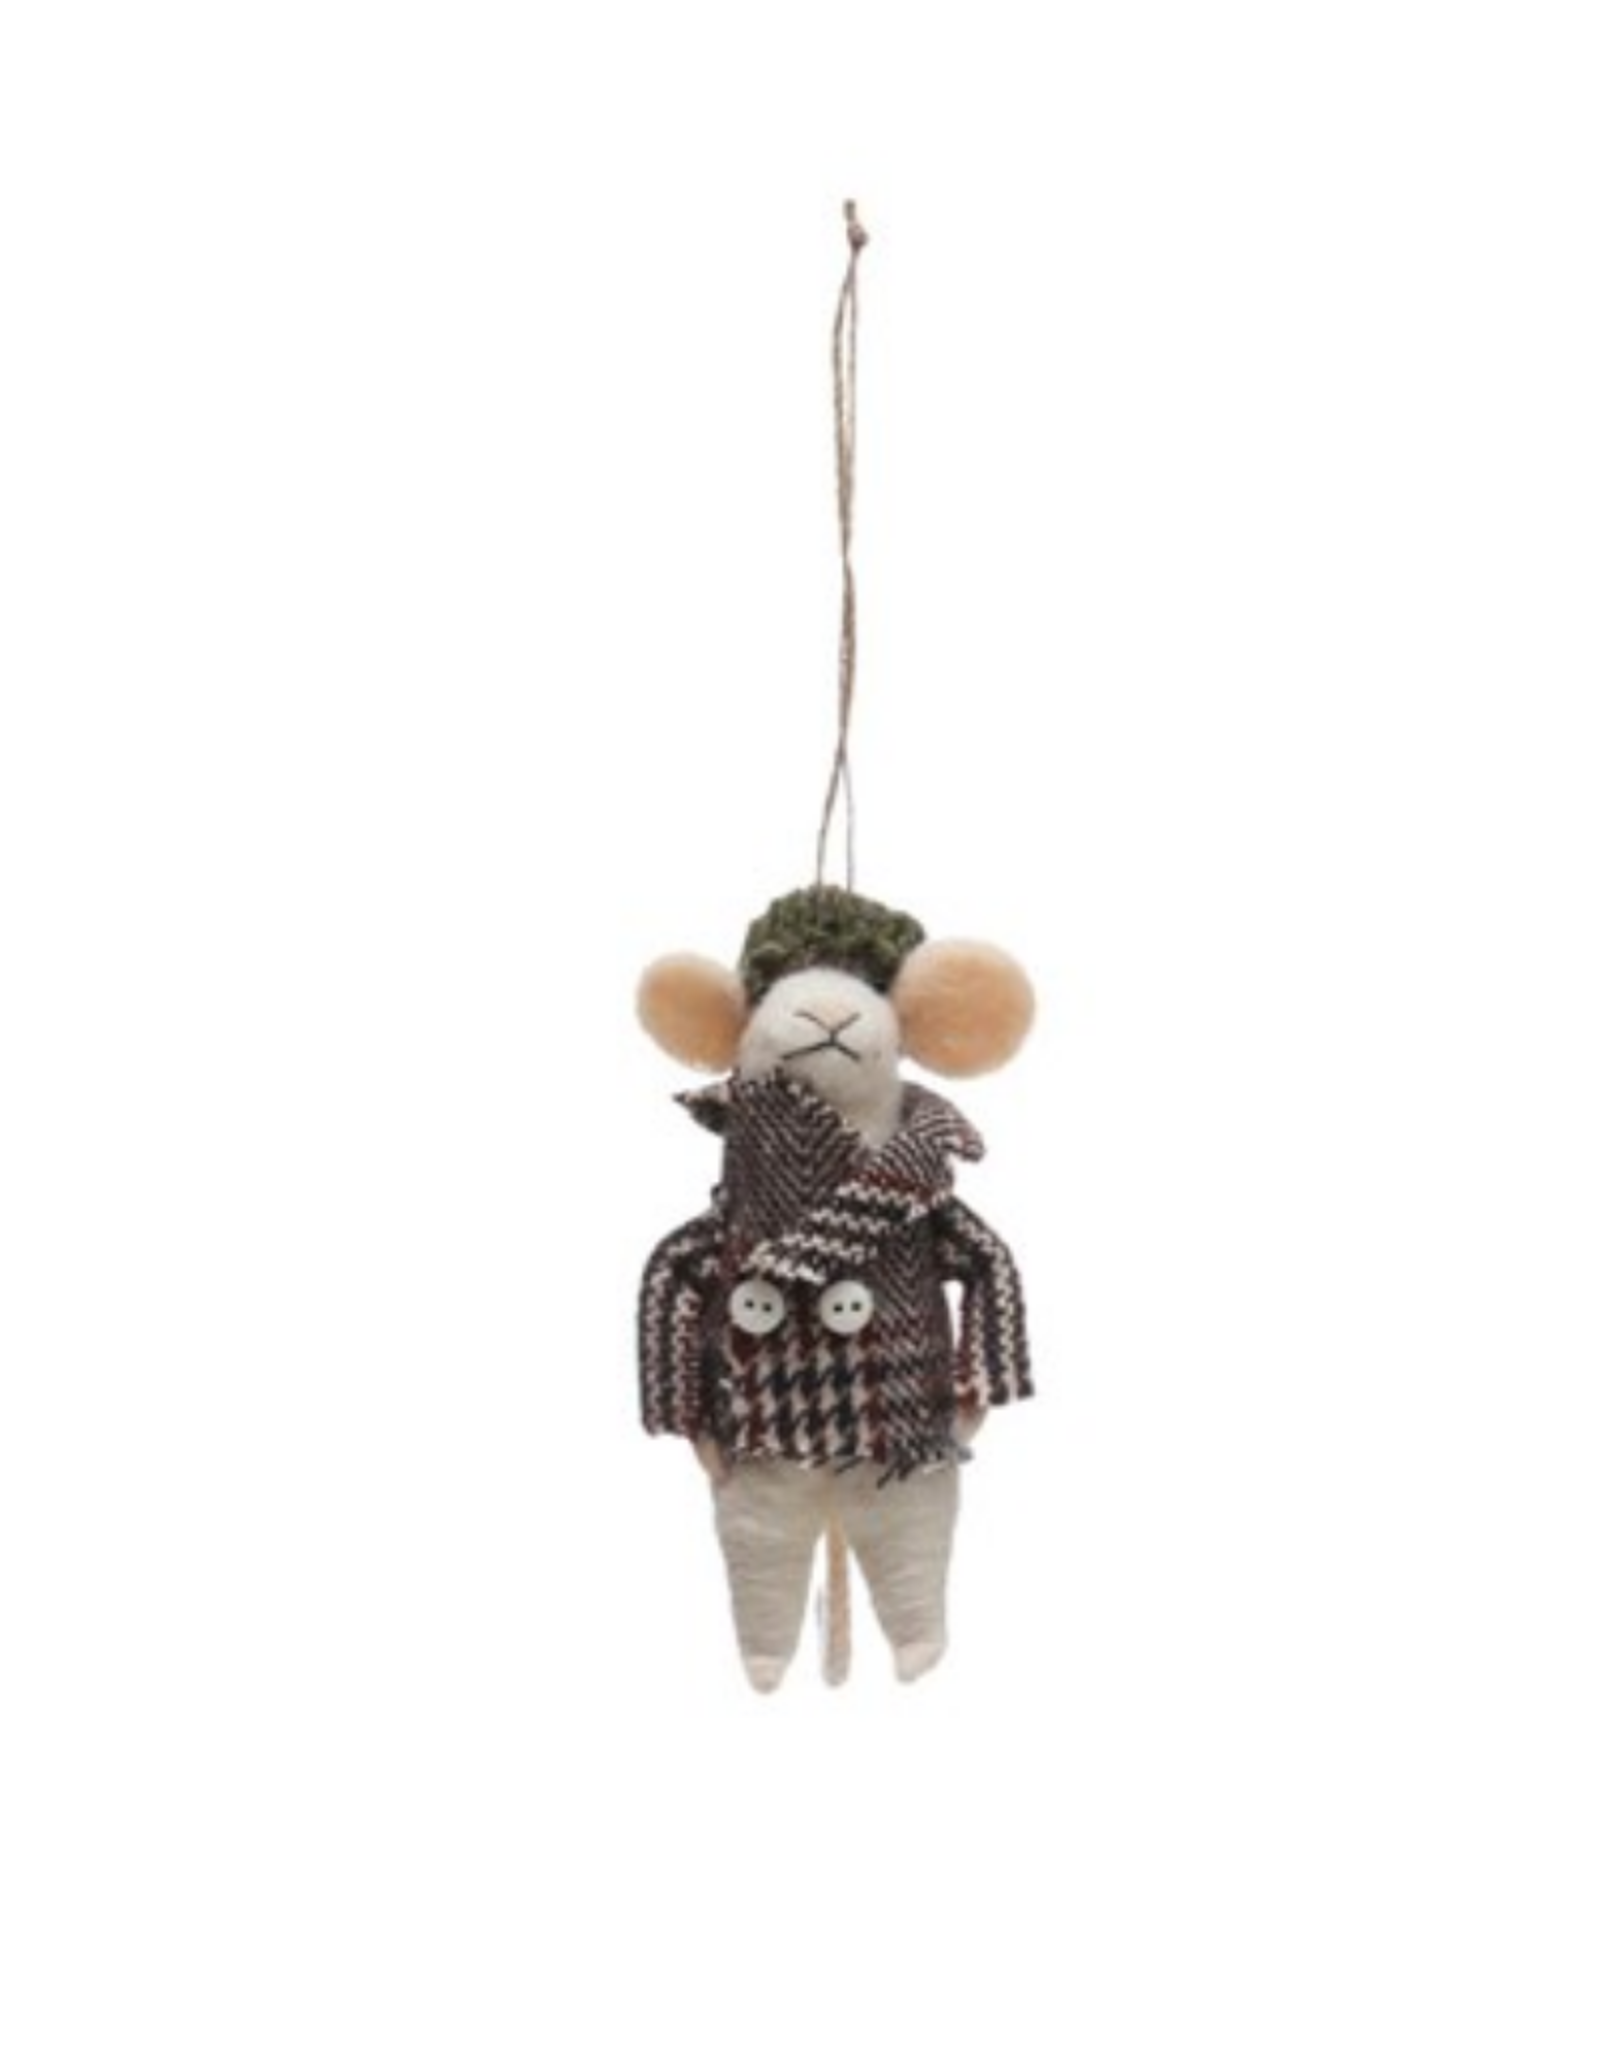 ORNAMENT-FELT-MOUSE IN OUTFIT